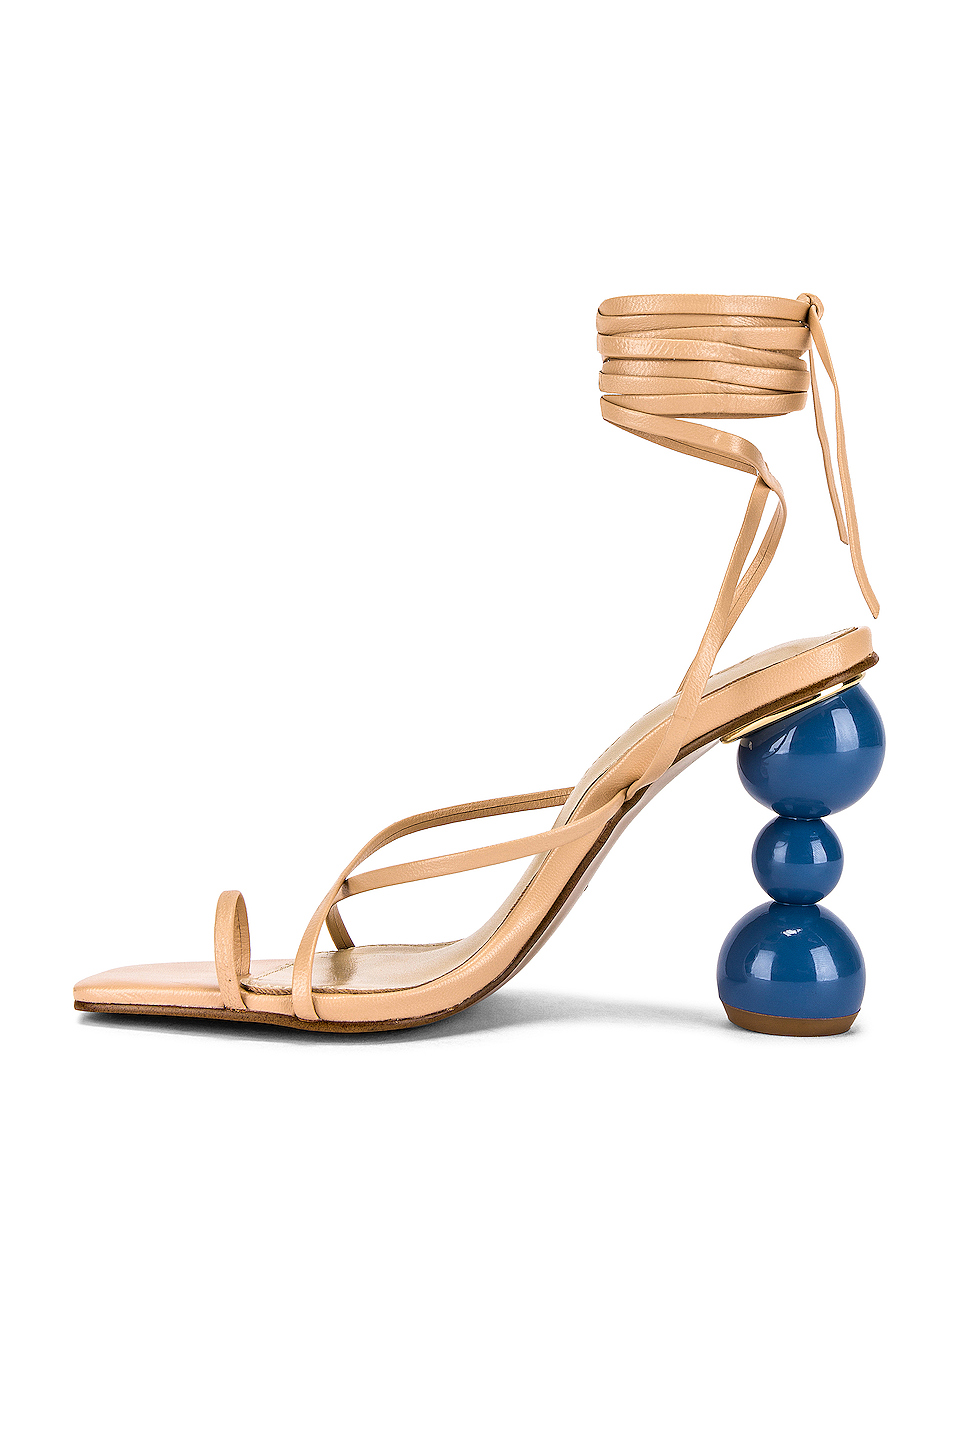 Yovanna Ventura rocking Nude leather crisscross tie sandals by Song of Style with stacked ball heel and thin ankle strap